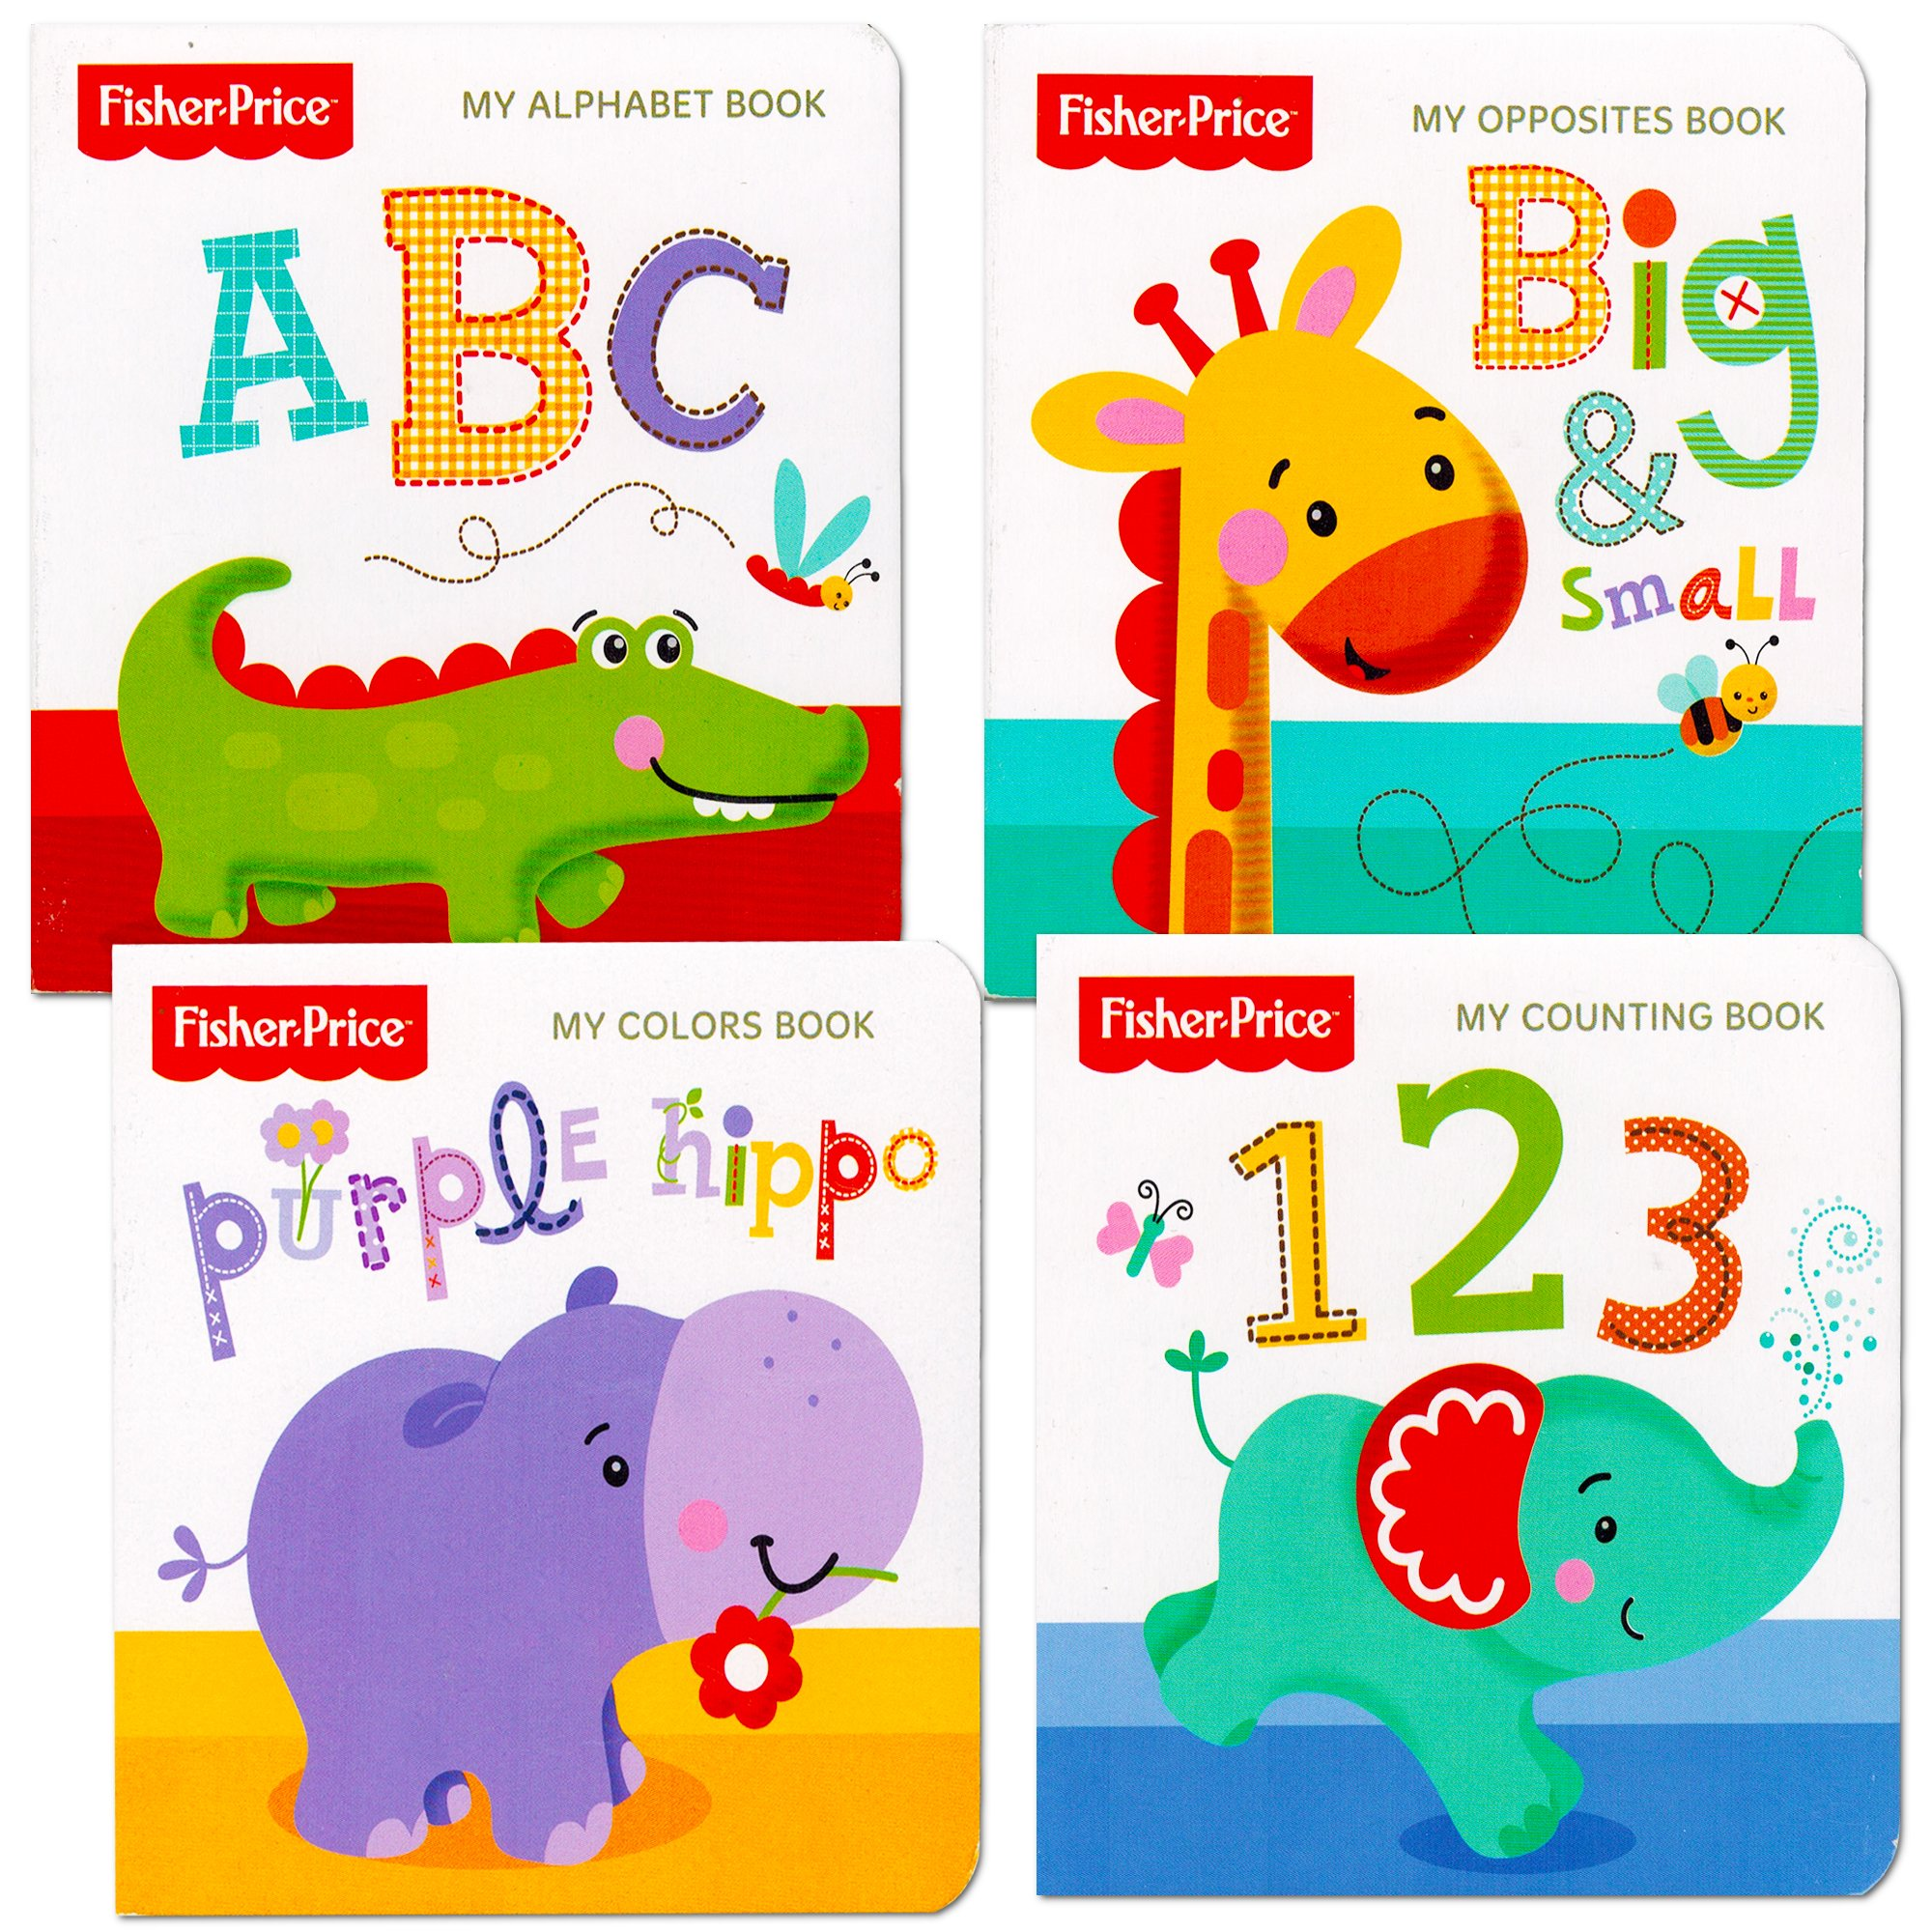 Fisher-Price ''My First Books Set of 4 Baby Toddler Board Books (ABC Book, Colors Book, Numbers Book, Opposites Book)